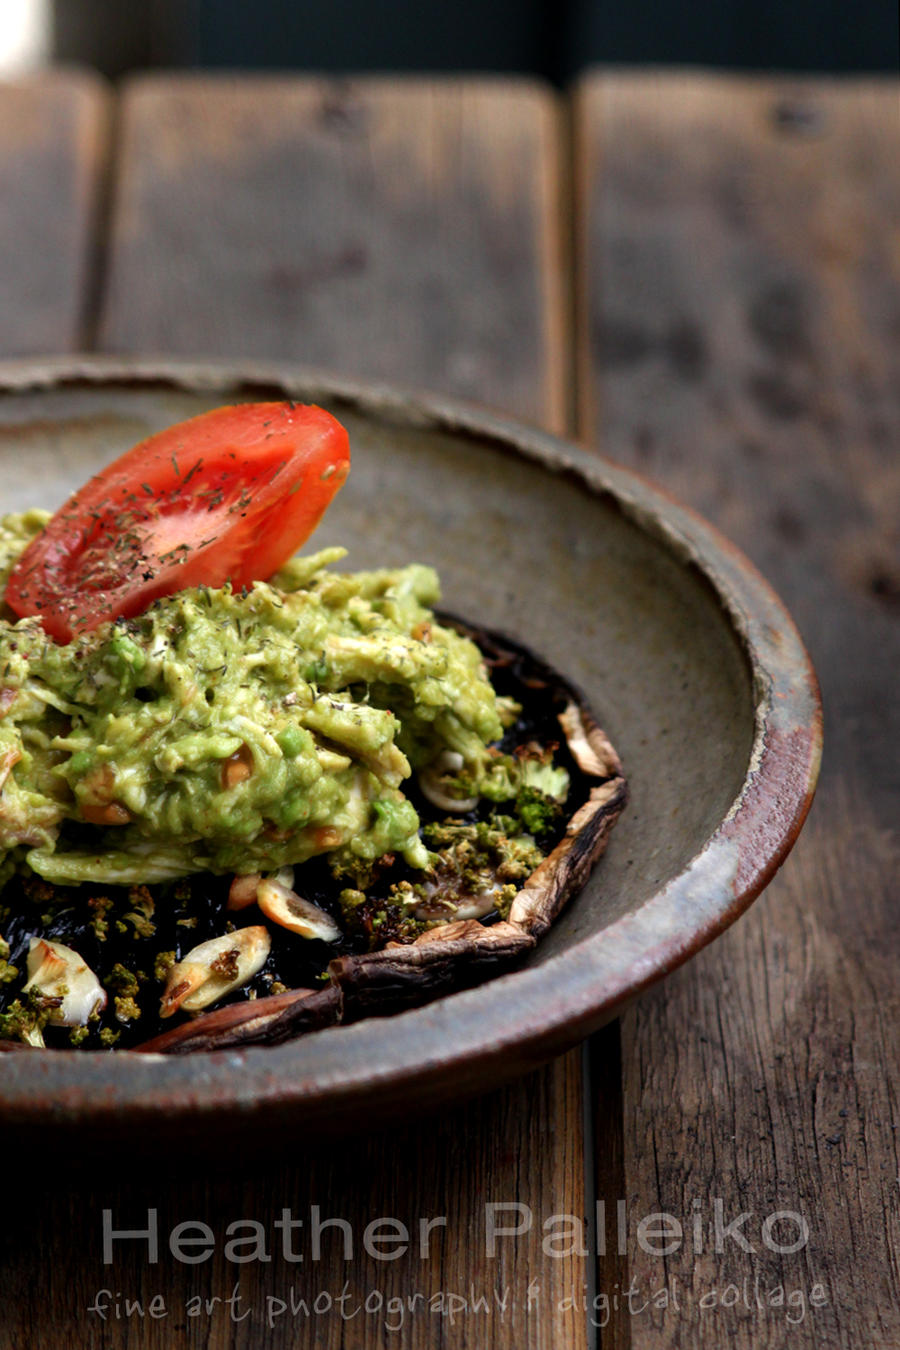 Roasted Portabella and Avocado Chicken Salad by hpdphotos